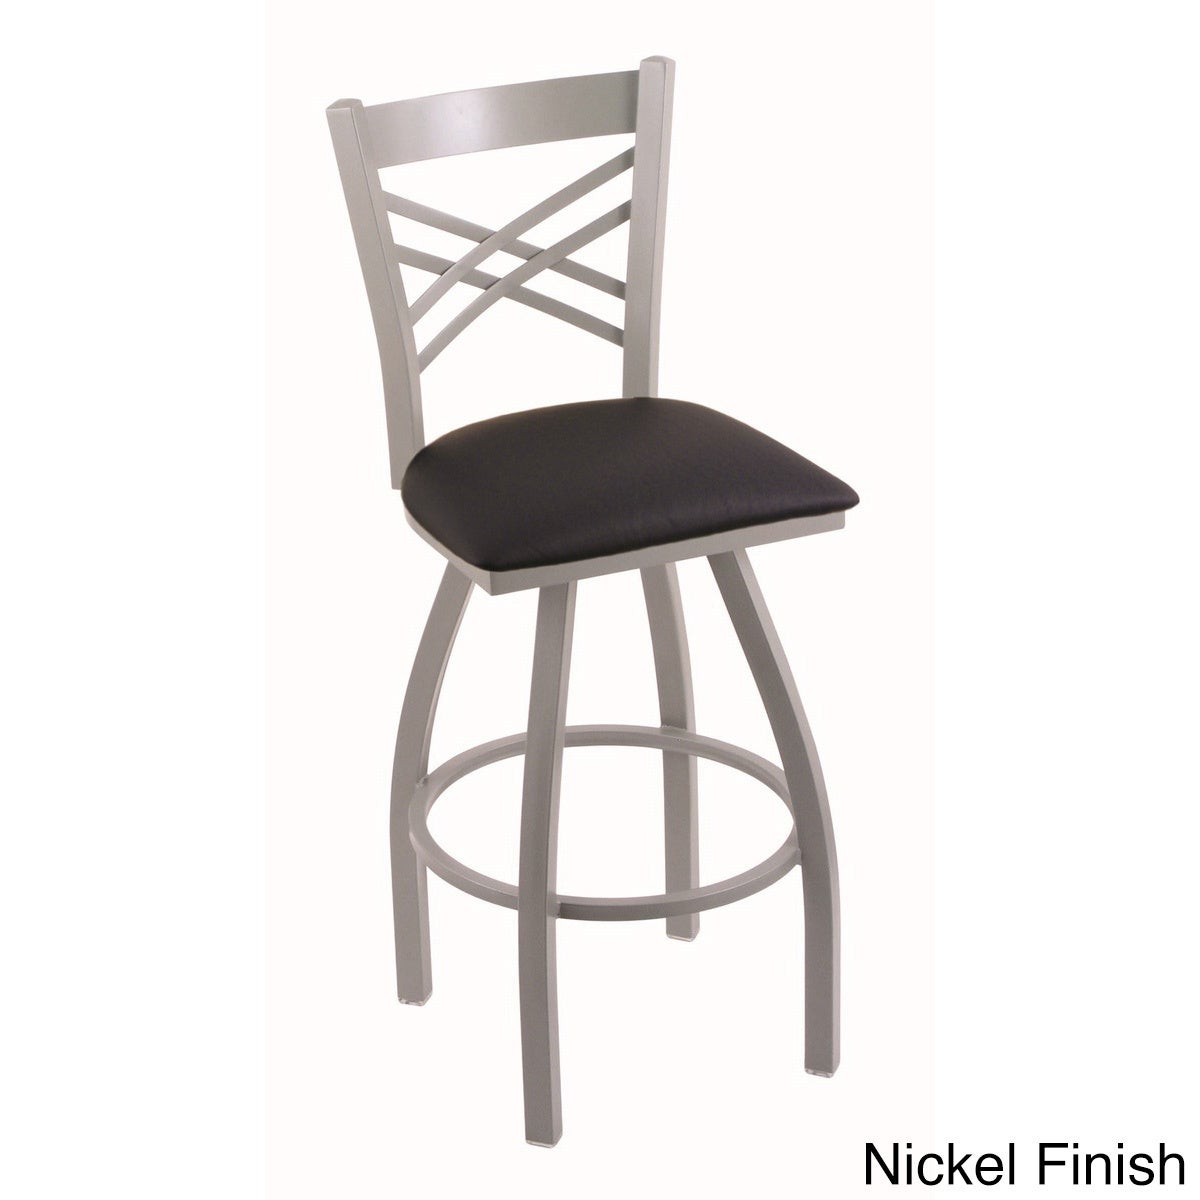 Counter Height Kitchen Stools : Counter Stool Swivel Chair Stools Kitchen Seat Bar Height Dining ...